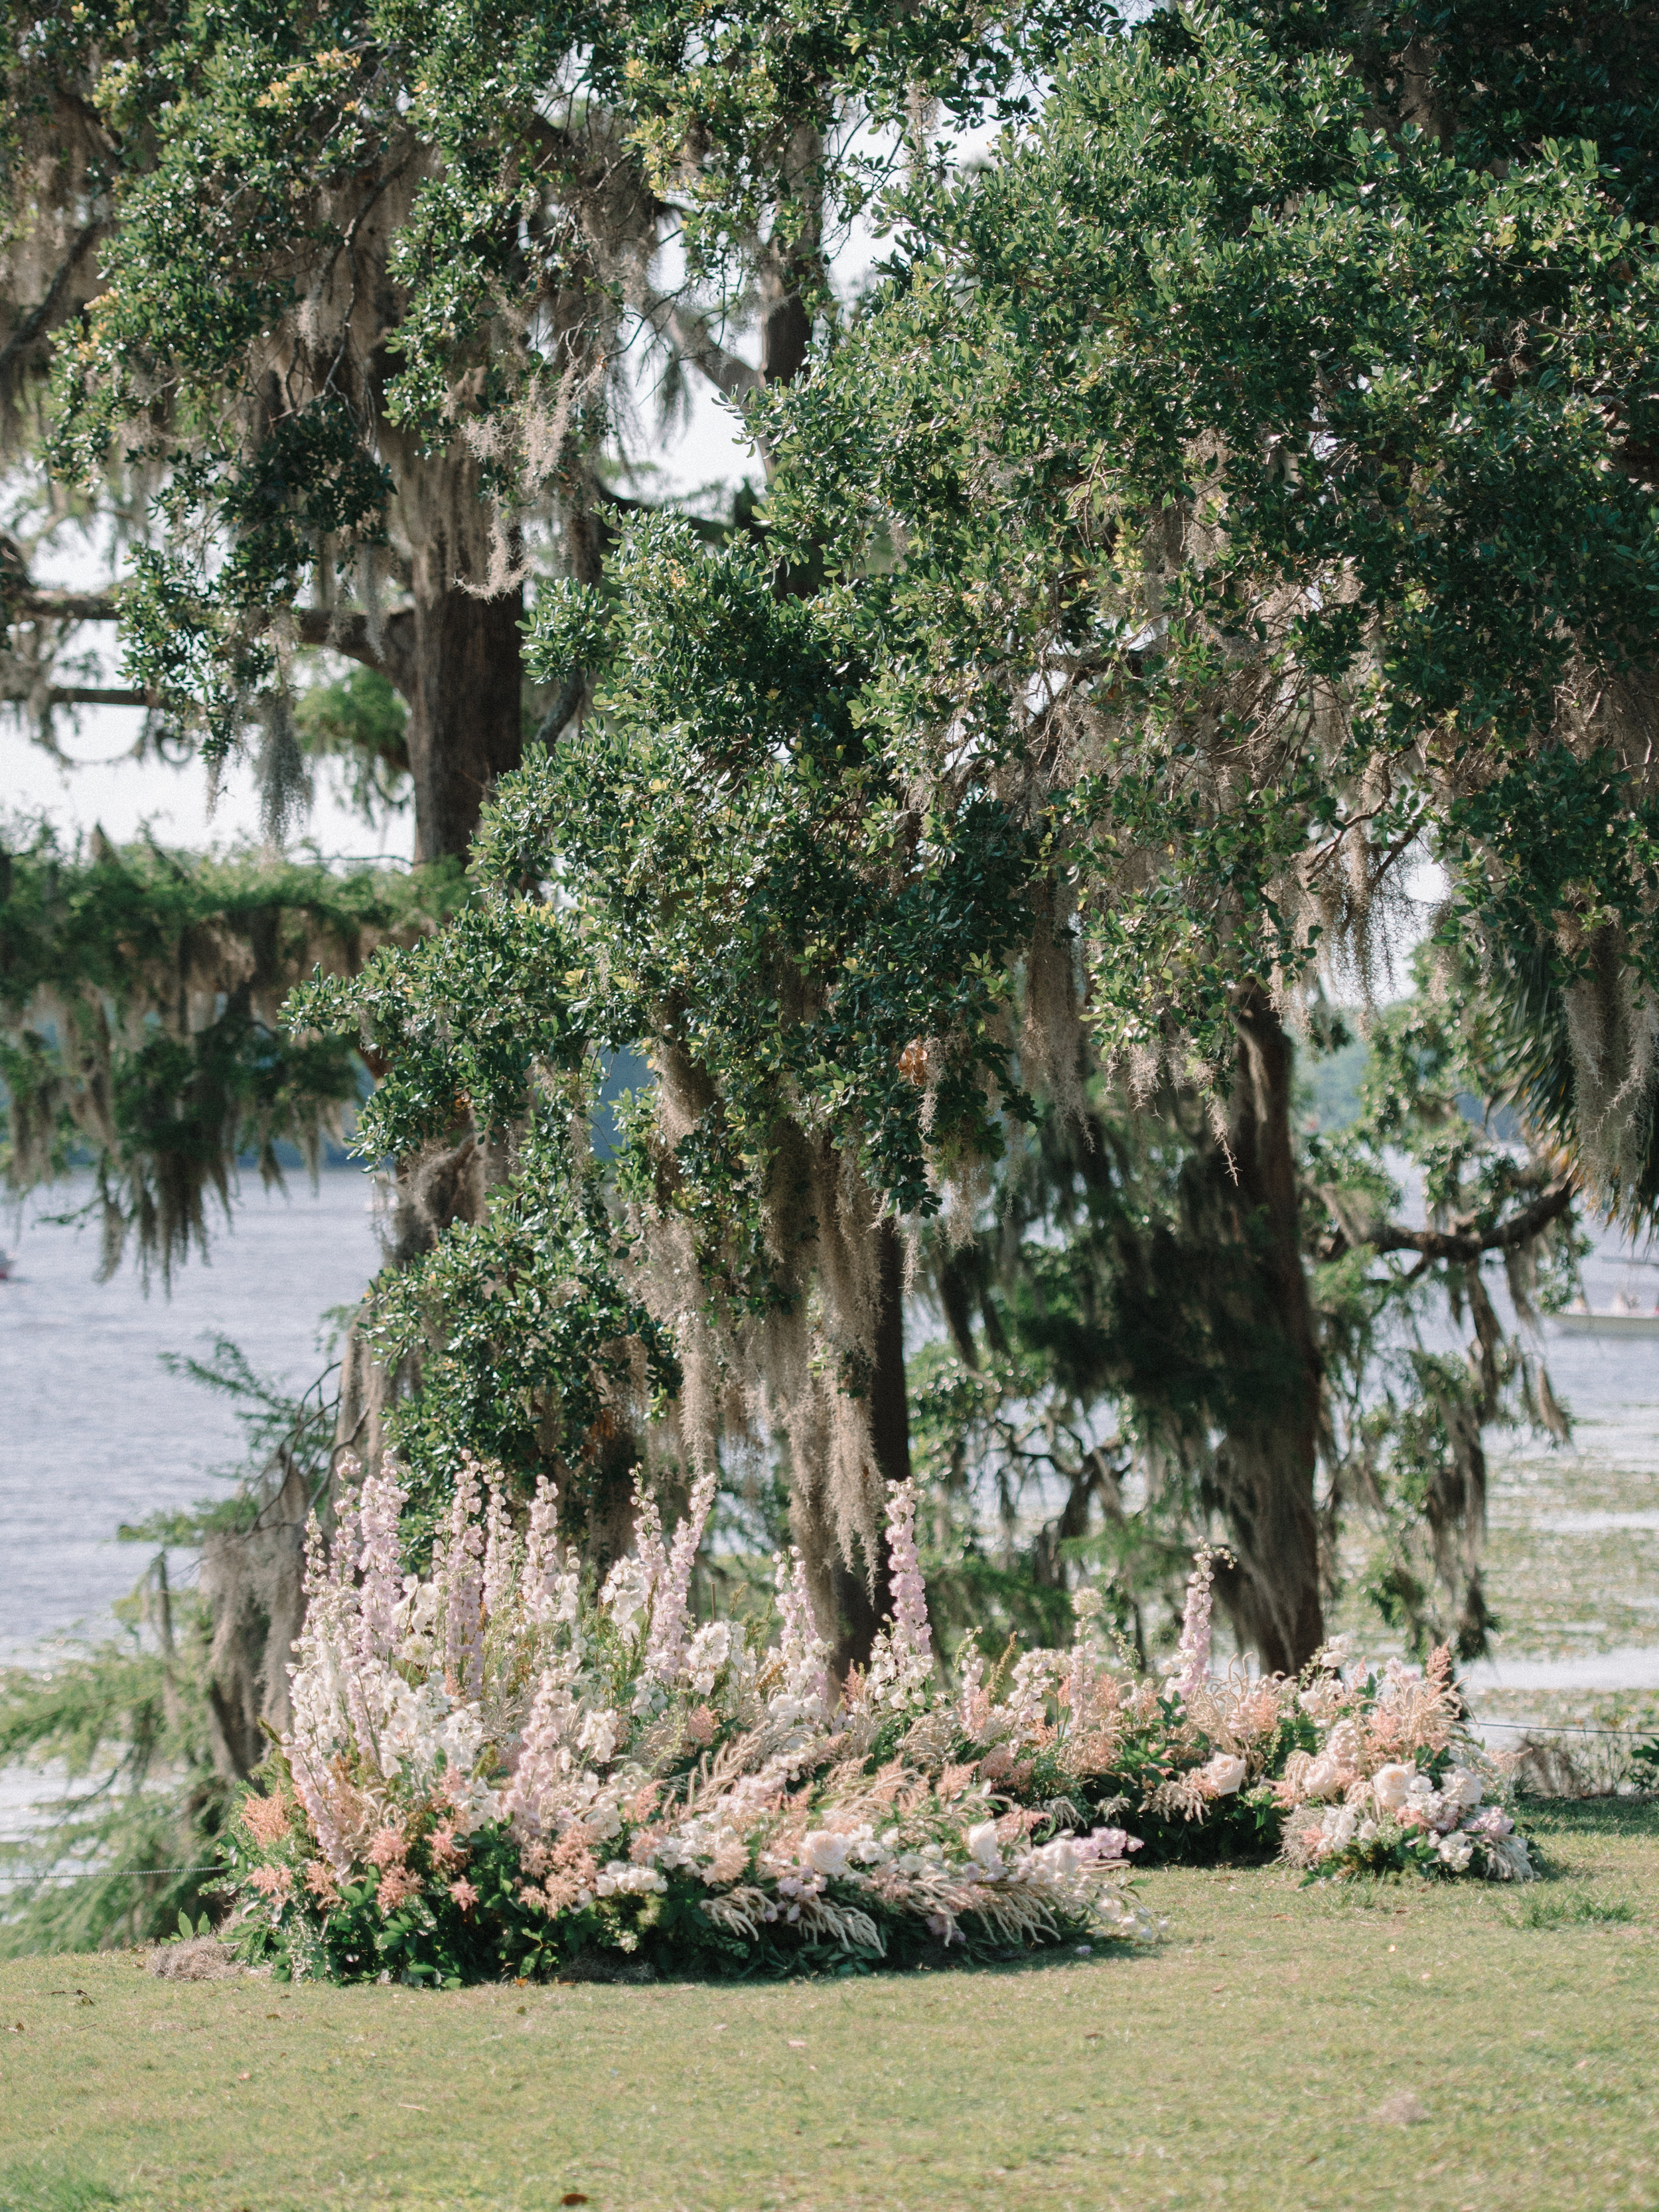 Floral ceremony horseshoe by Scarlet Begonias at Wachesaw Plantation in Murrells Inlet SC  //  Myrtle Beach wedding photos by Pasha Belman Photography